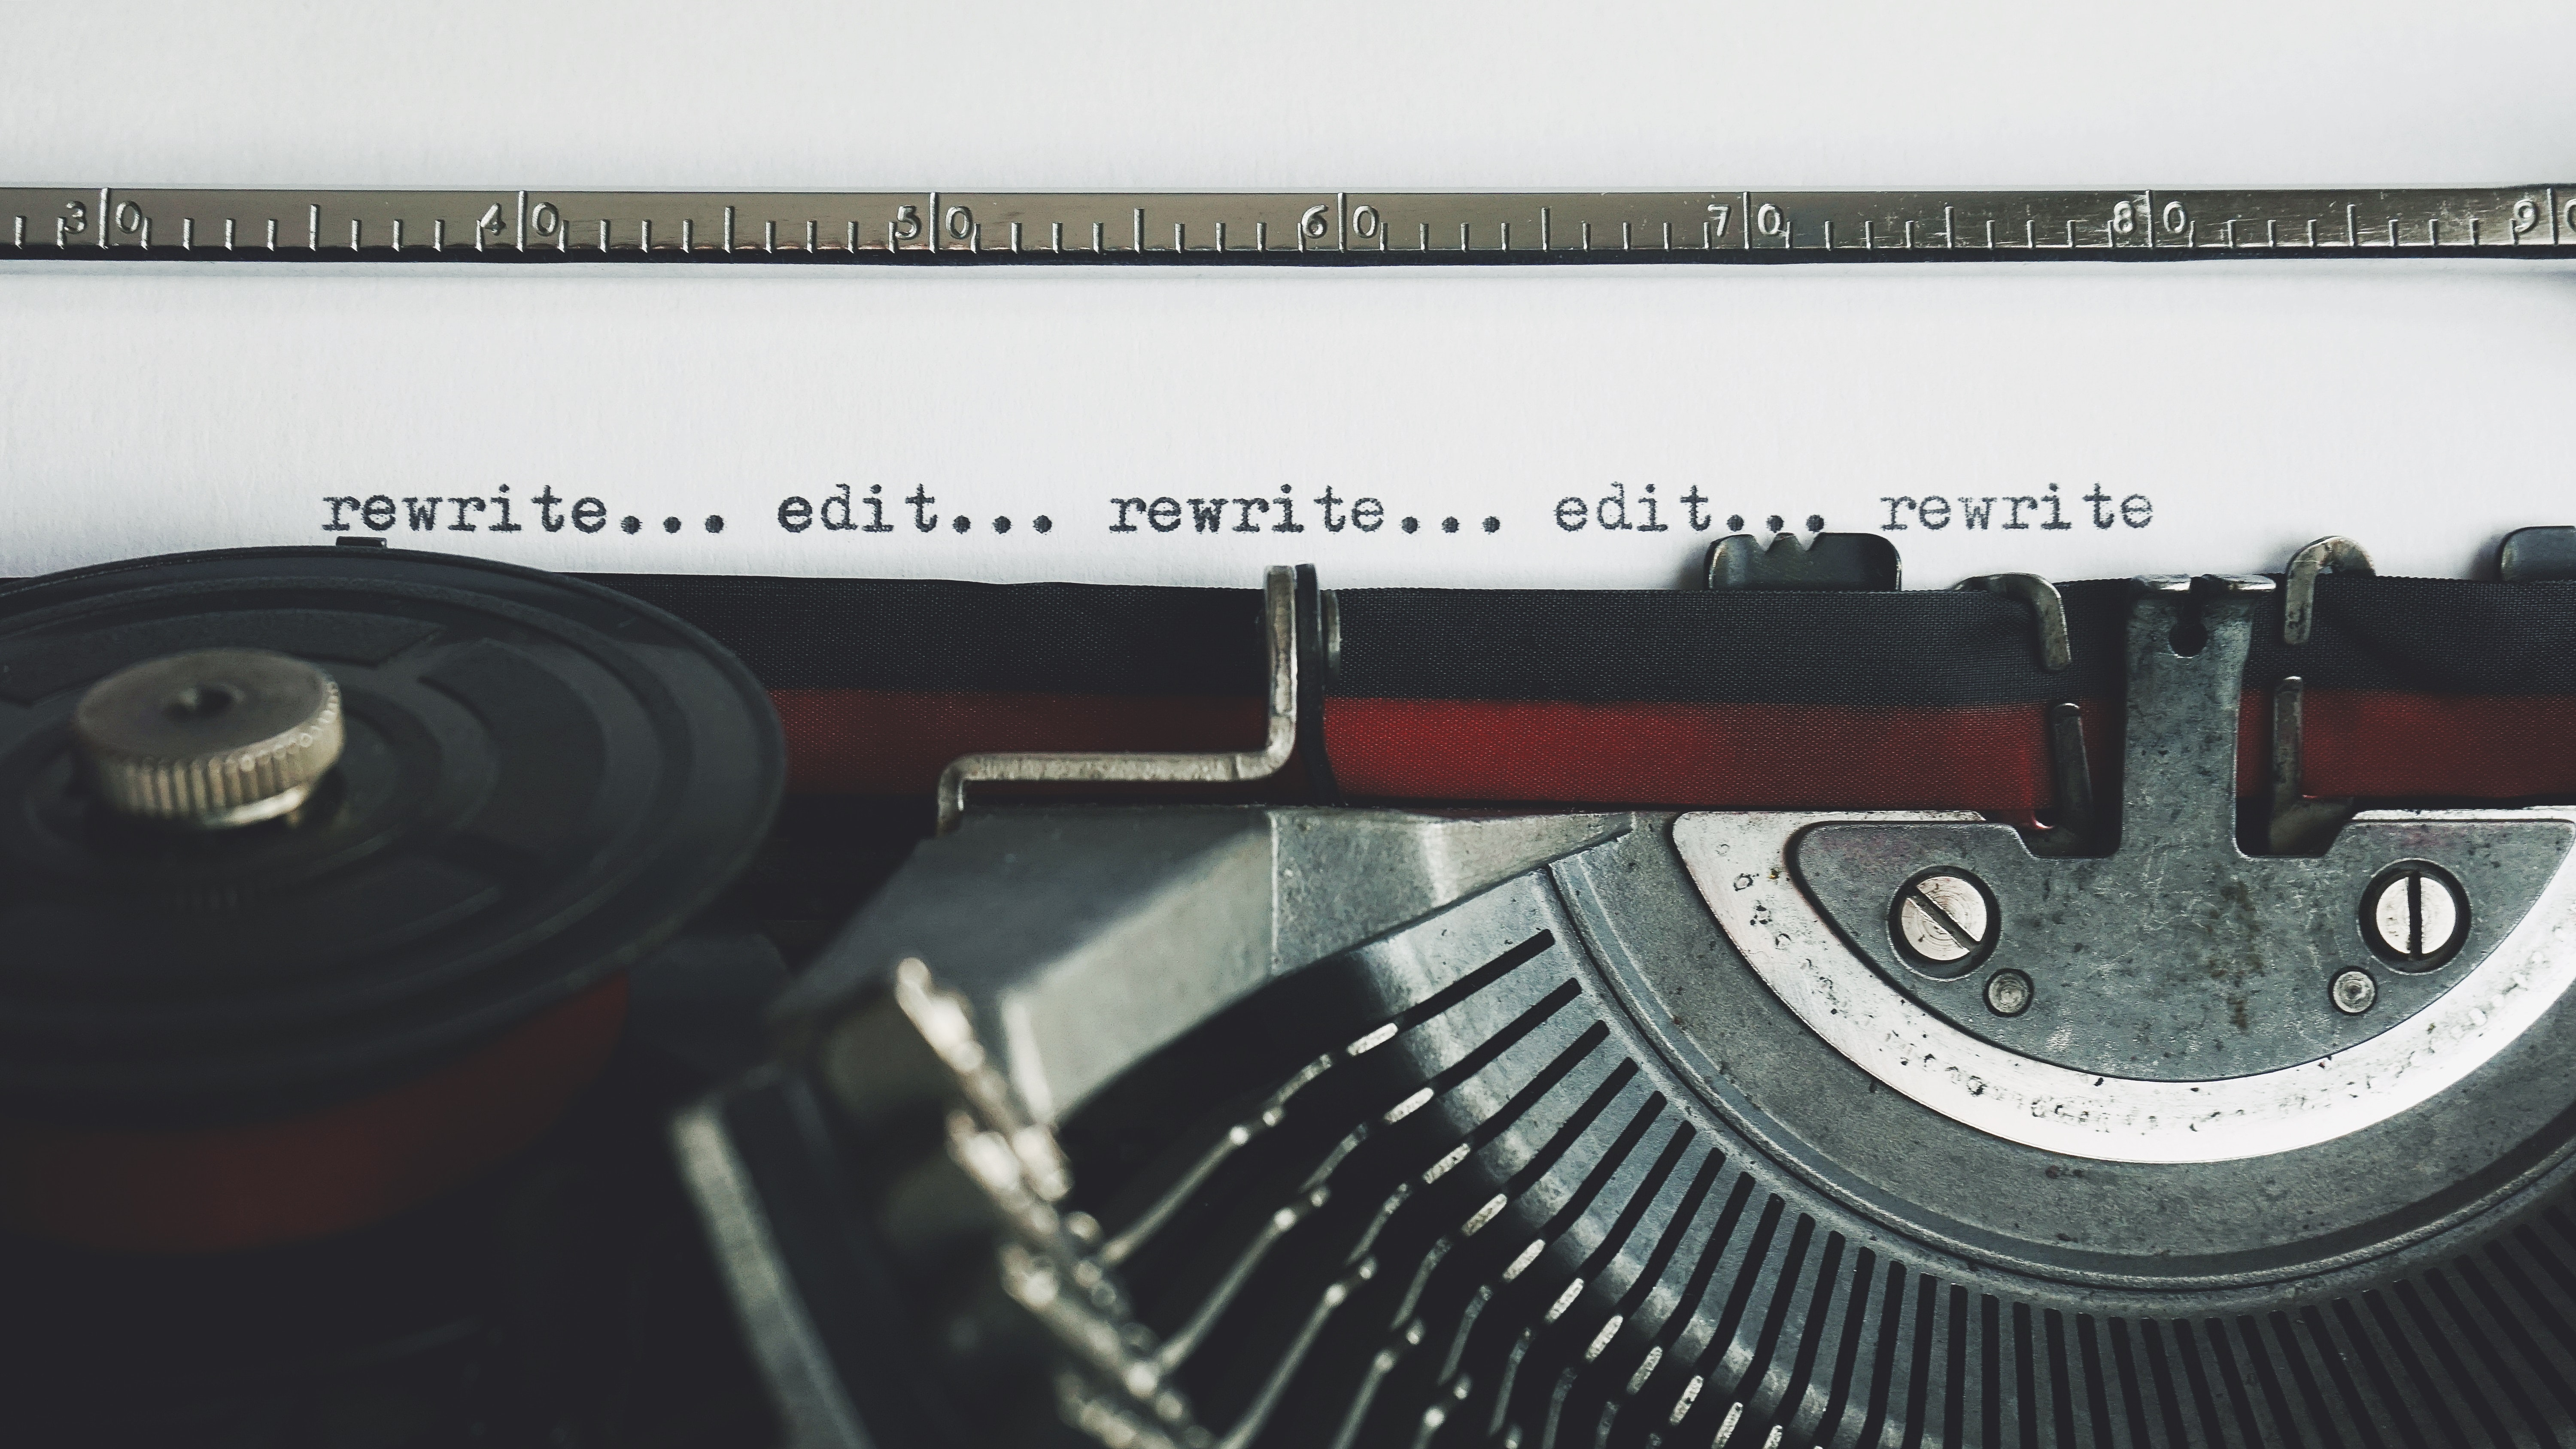 write and rewrite